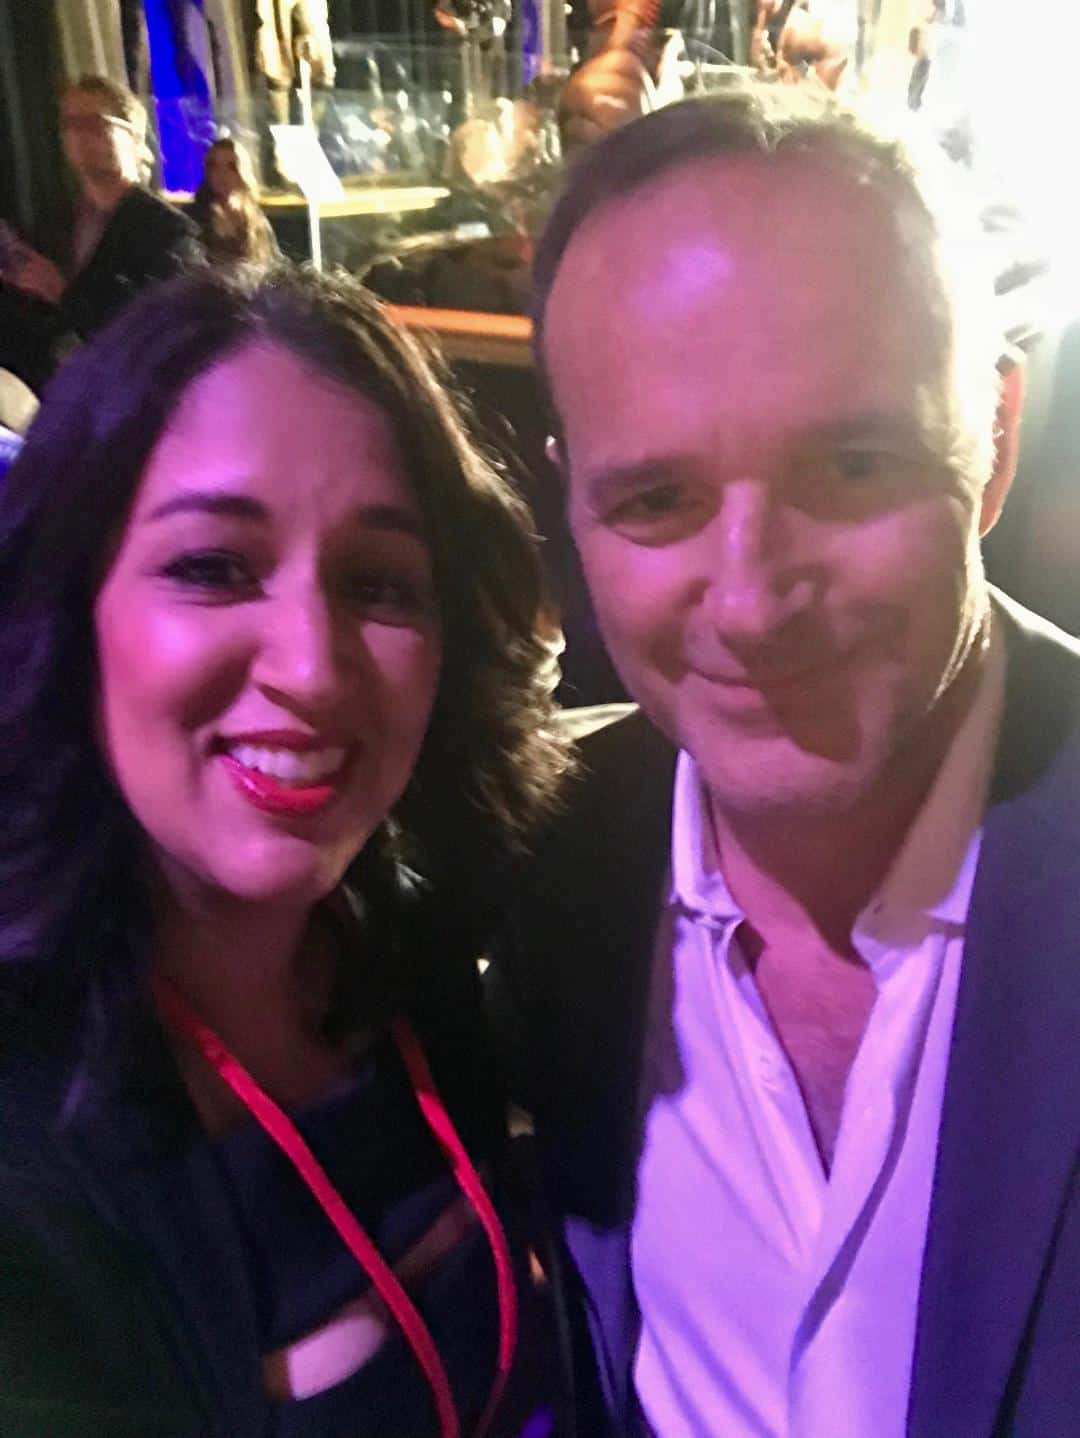 Me and my bae Clark Gregg at the Avengers Infinity War Premiere